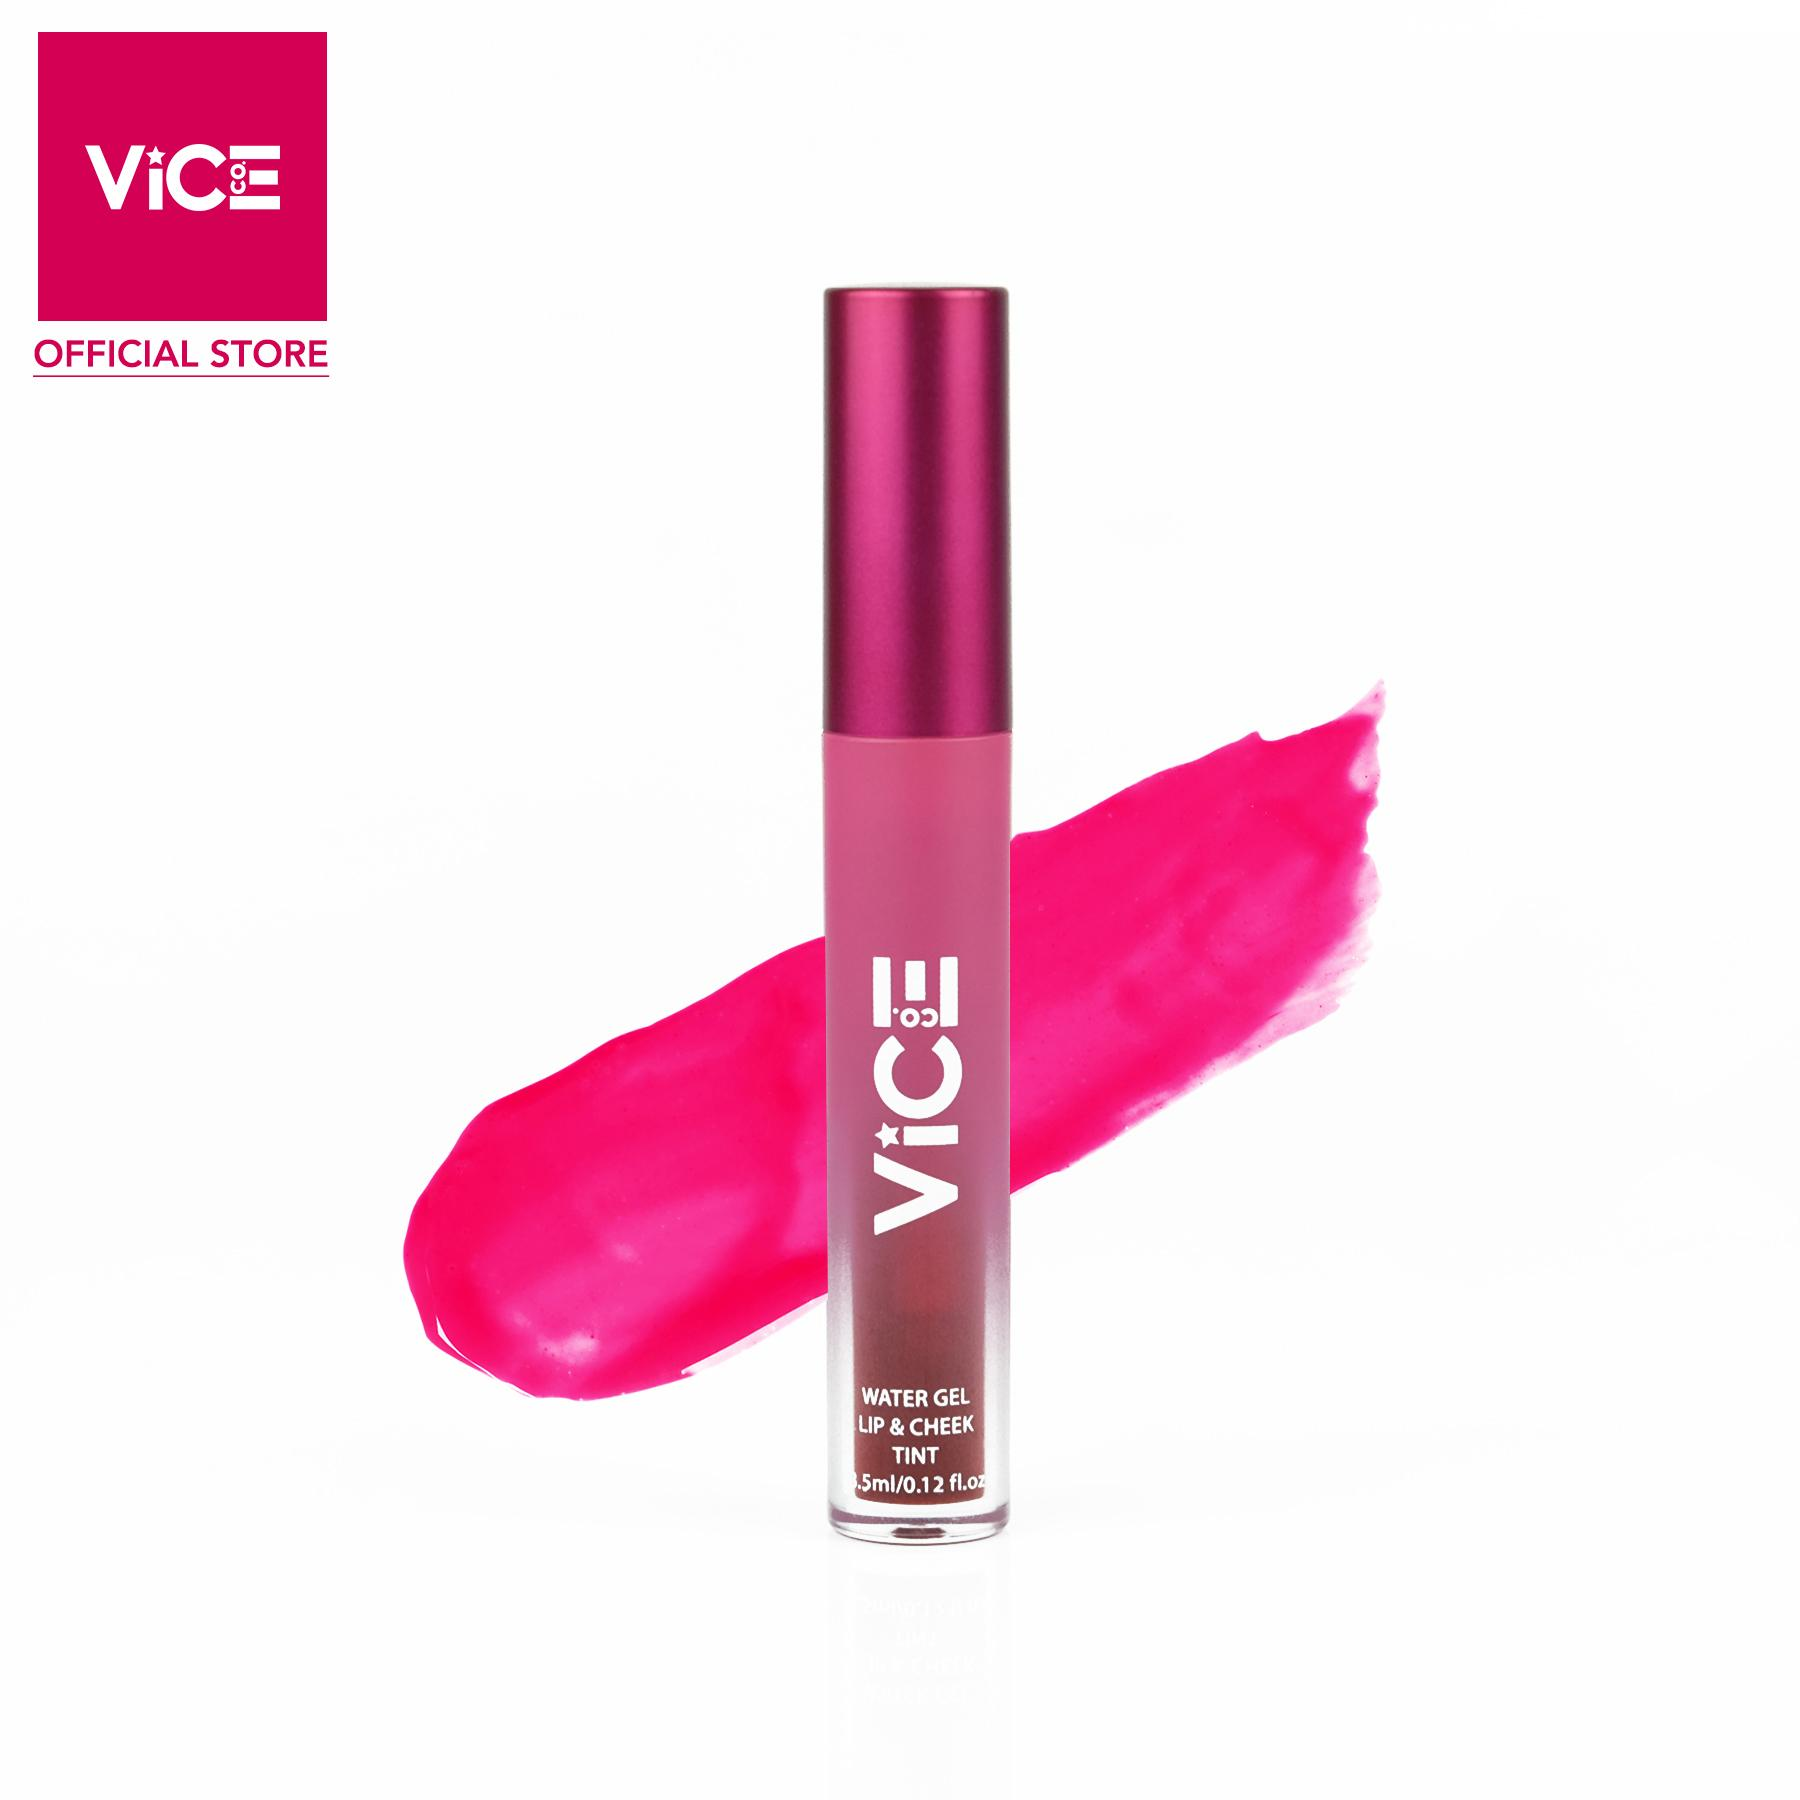 Vice Cosmetics Water Gel Lip & Cheek Tint Seswang Philippines